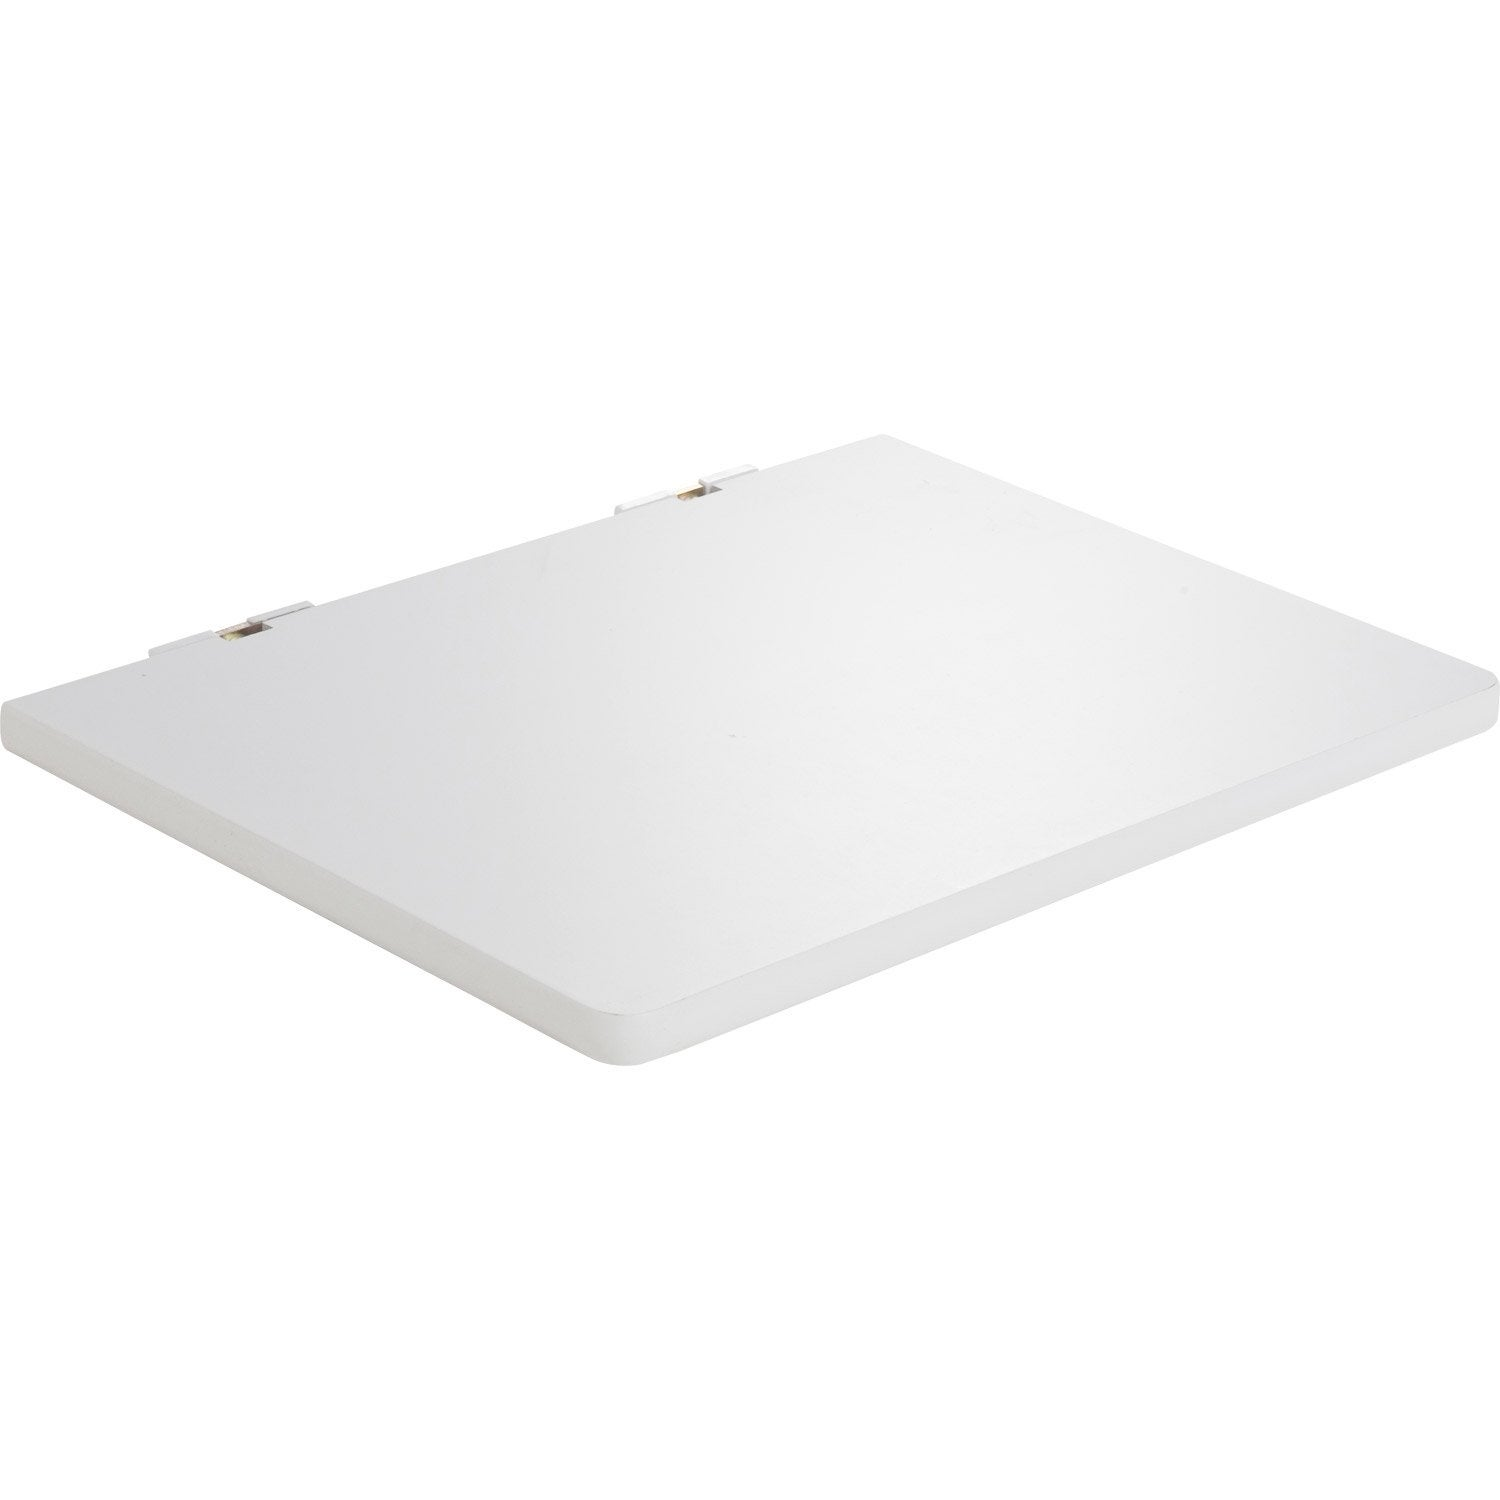 Etag re pour micro onde blanc l 50 x p 40 cm mm - Table rabattable leroy merlin ...